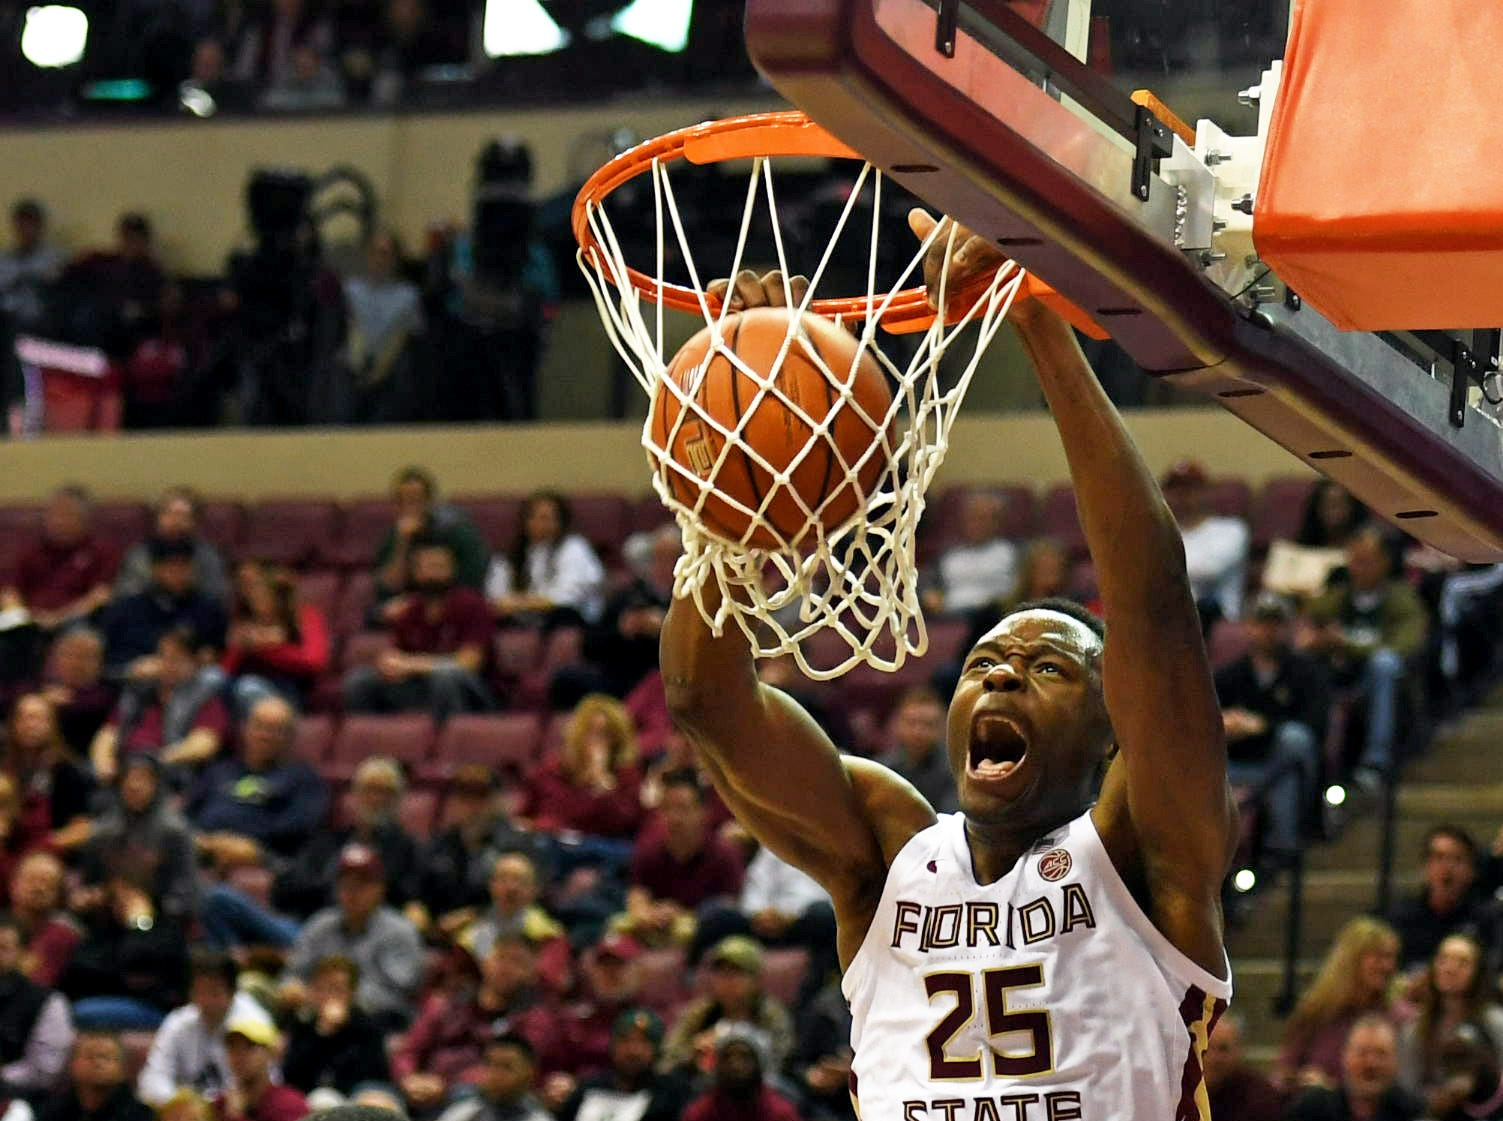 Jan 9, 2019; Tallahassee, FL, USA;  Florida State Seminoles forward Mfiondu Kabengele (25) dunks the ball against Miami Hurricanes guard Anthony Lawrence II (3)  during the first half at Donald L. Tucker Center. Mandatory Credit: Melina Myers-USA TODAY Sports